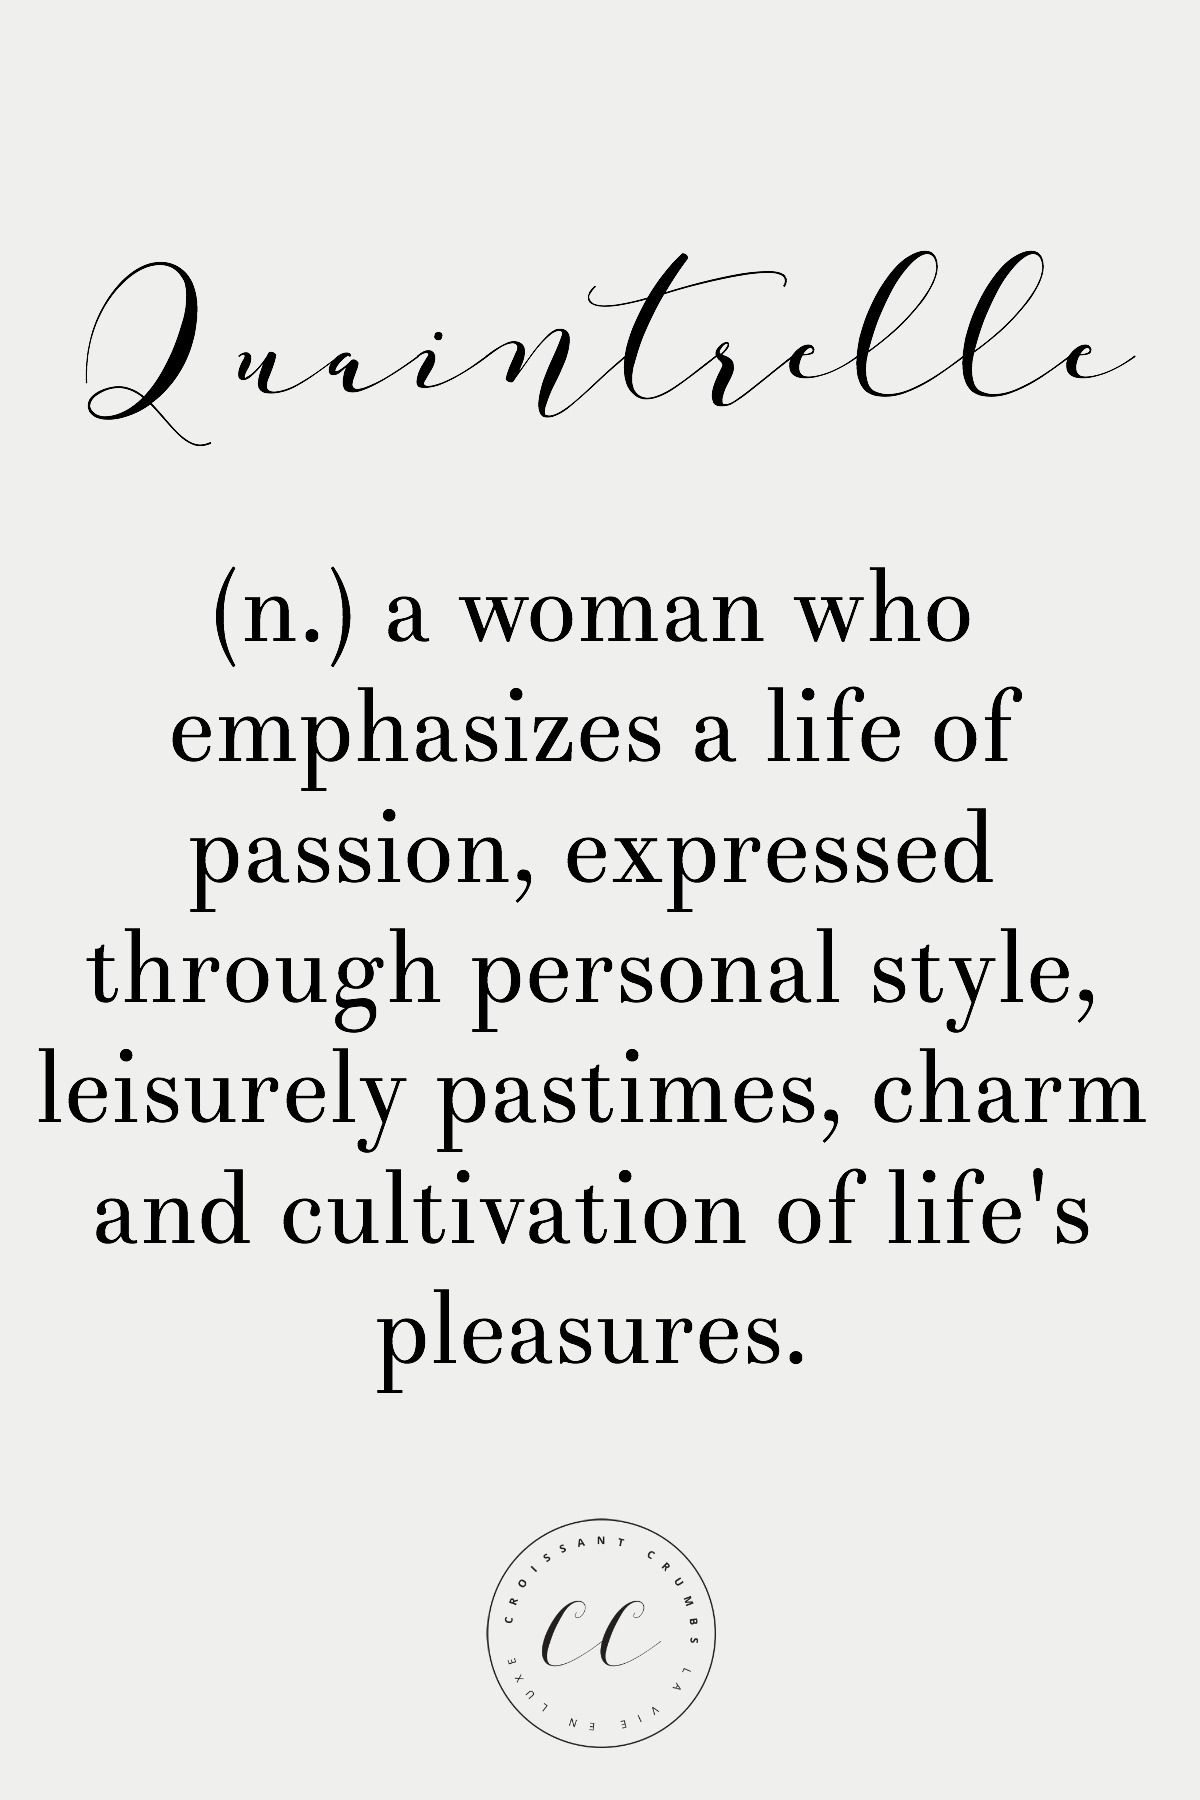 Word Of The Day Quaintrelle Personal Style Life S And Definitions